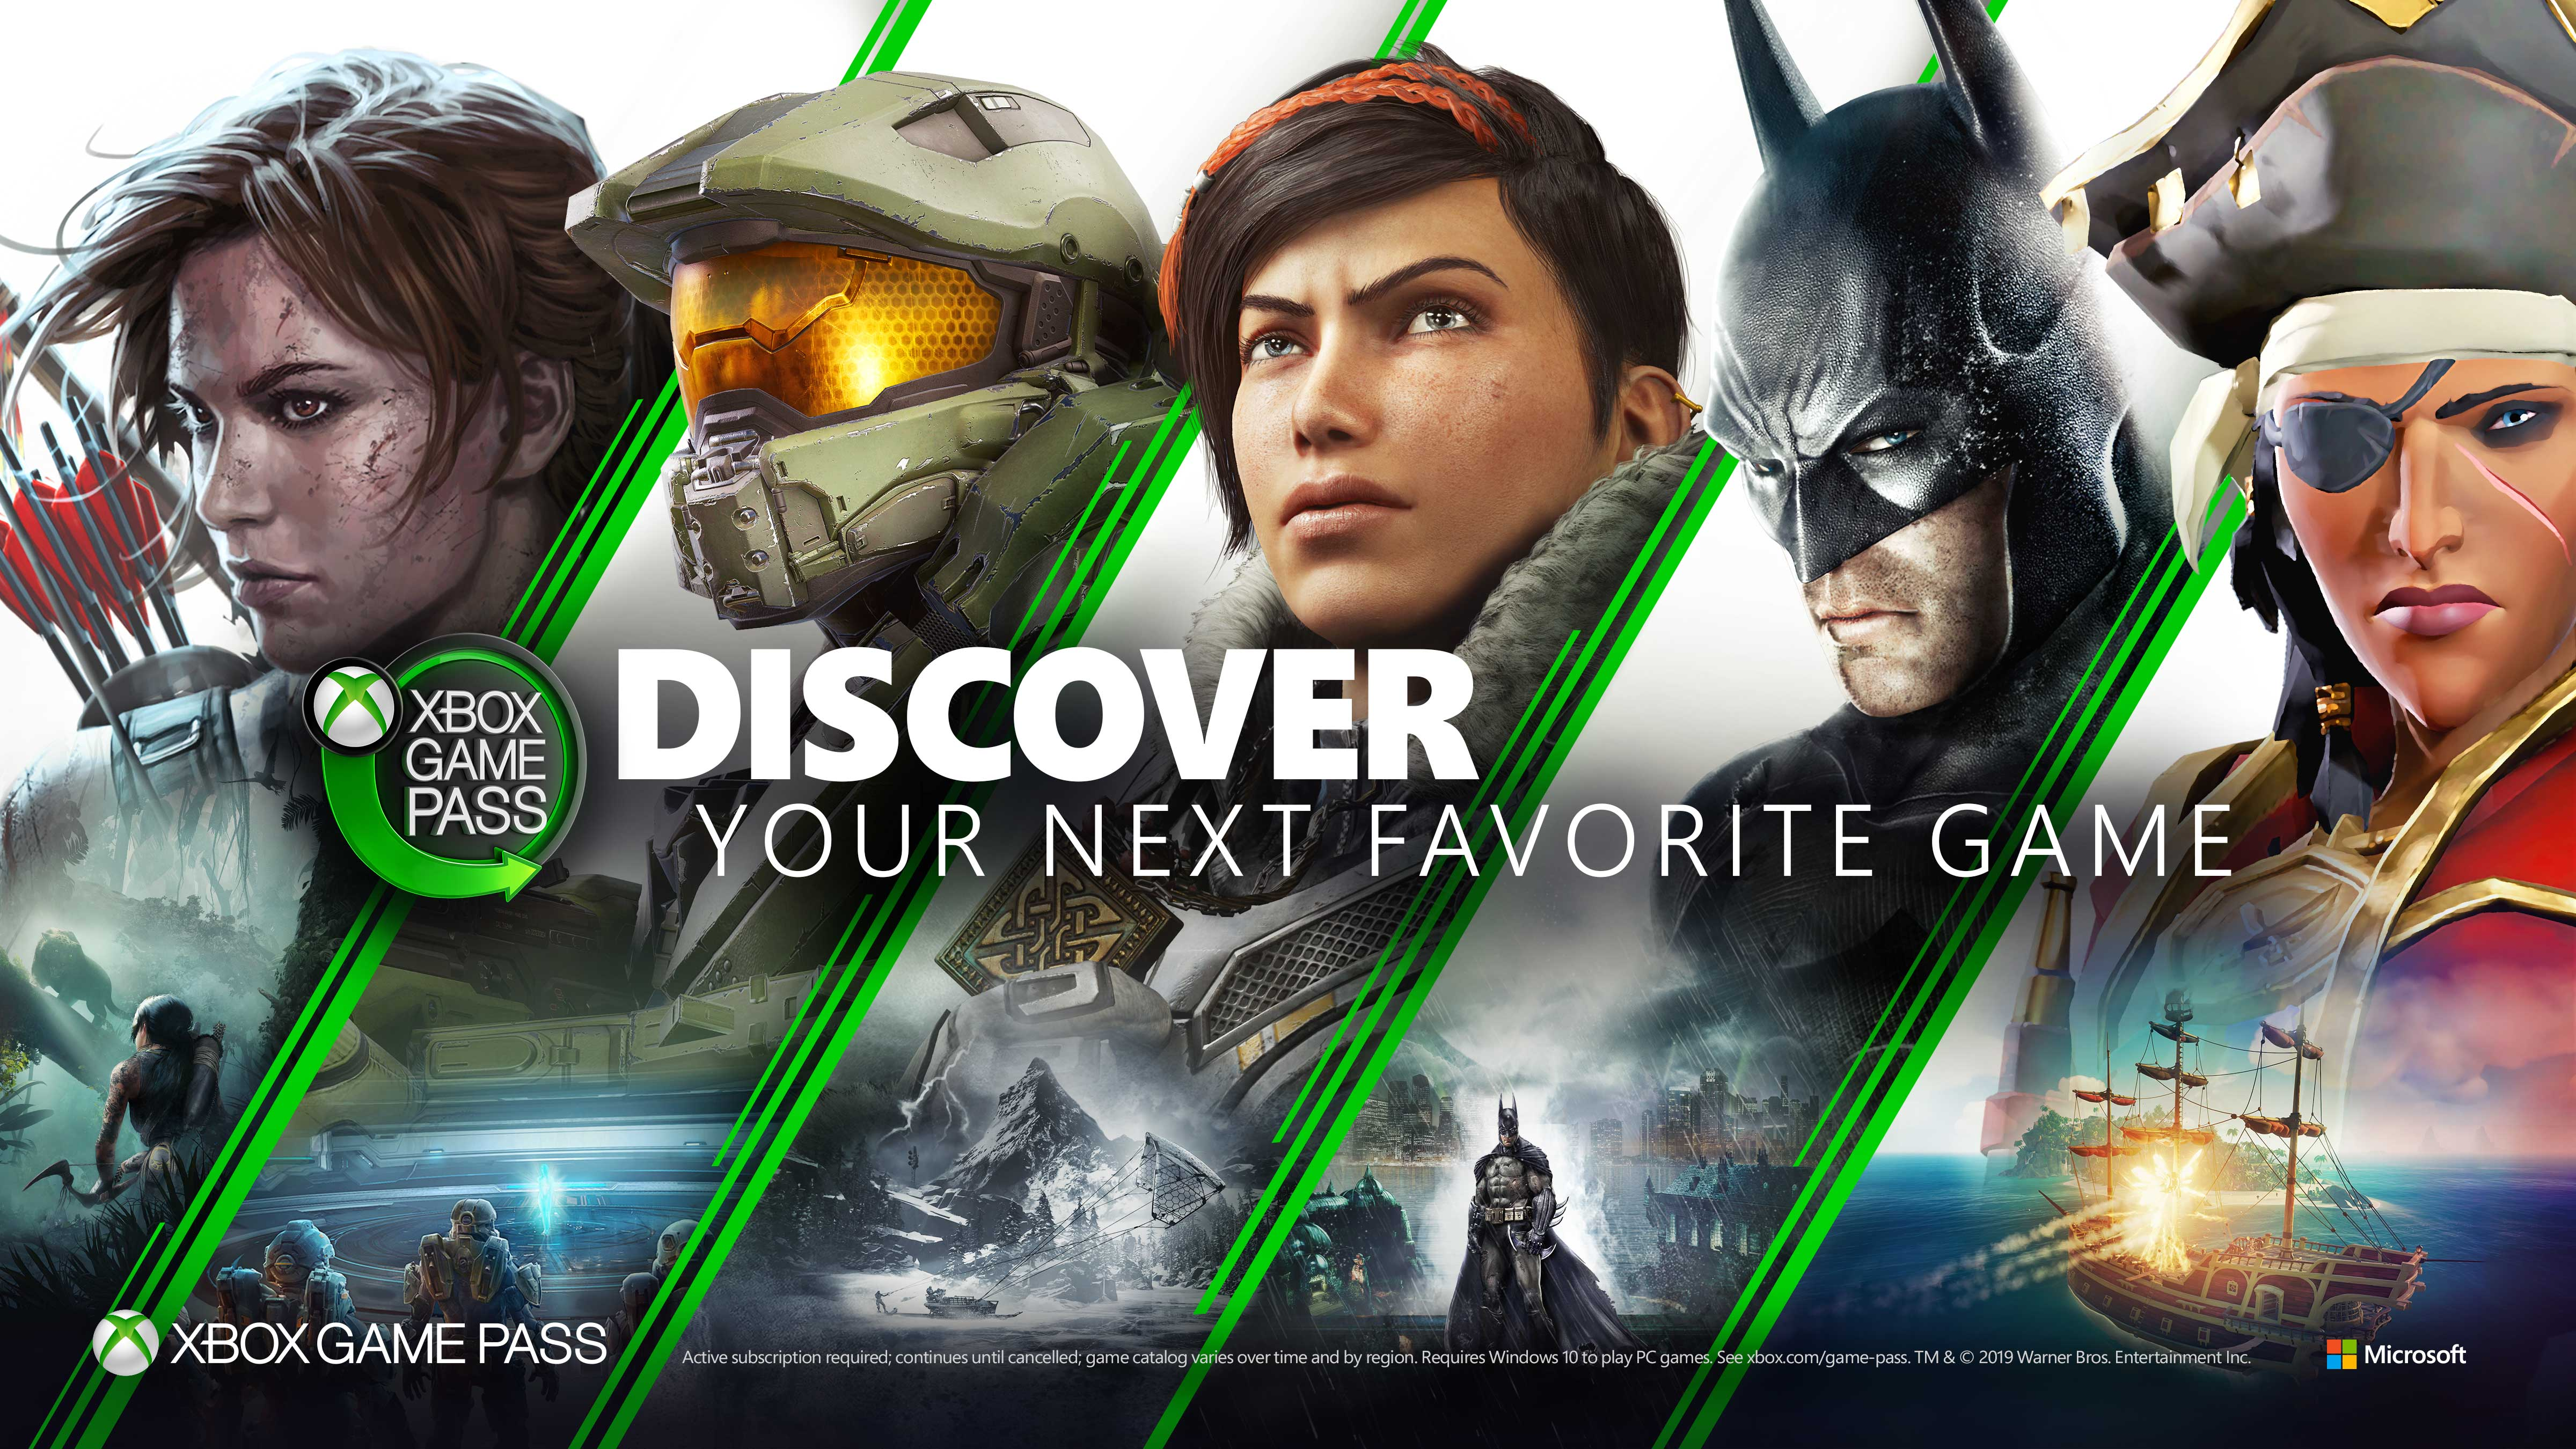 Best Xbox Game Pass games: 30 games you absolutely need to download | TechRadar